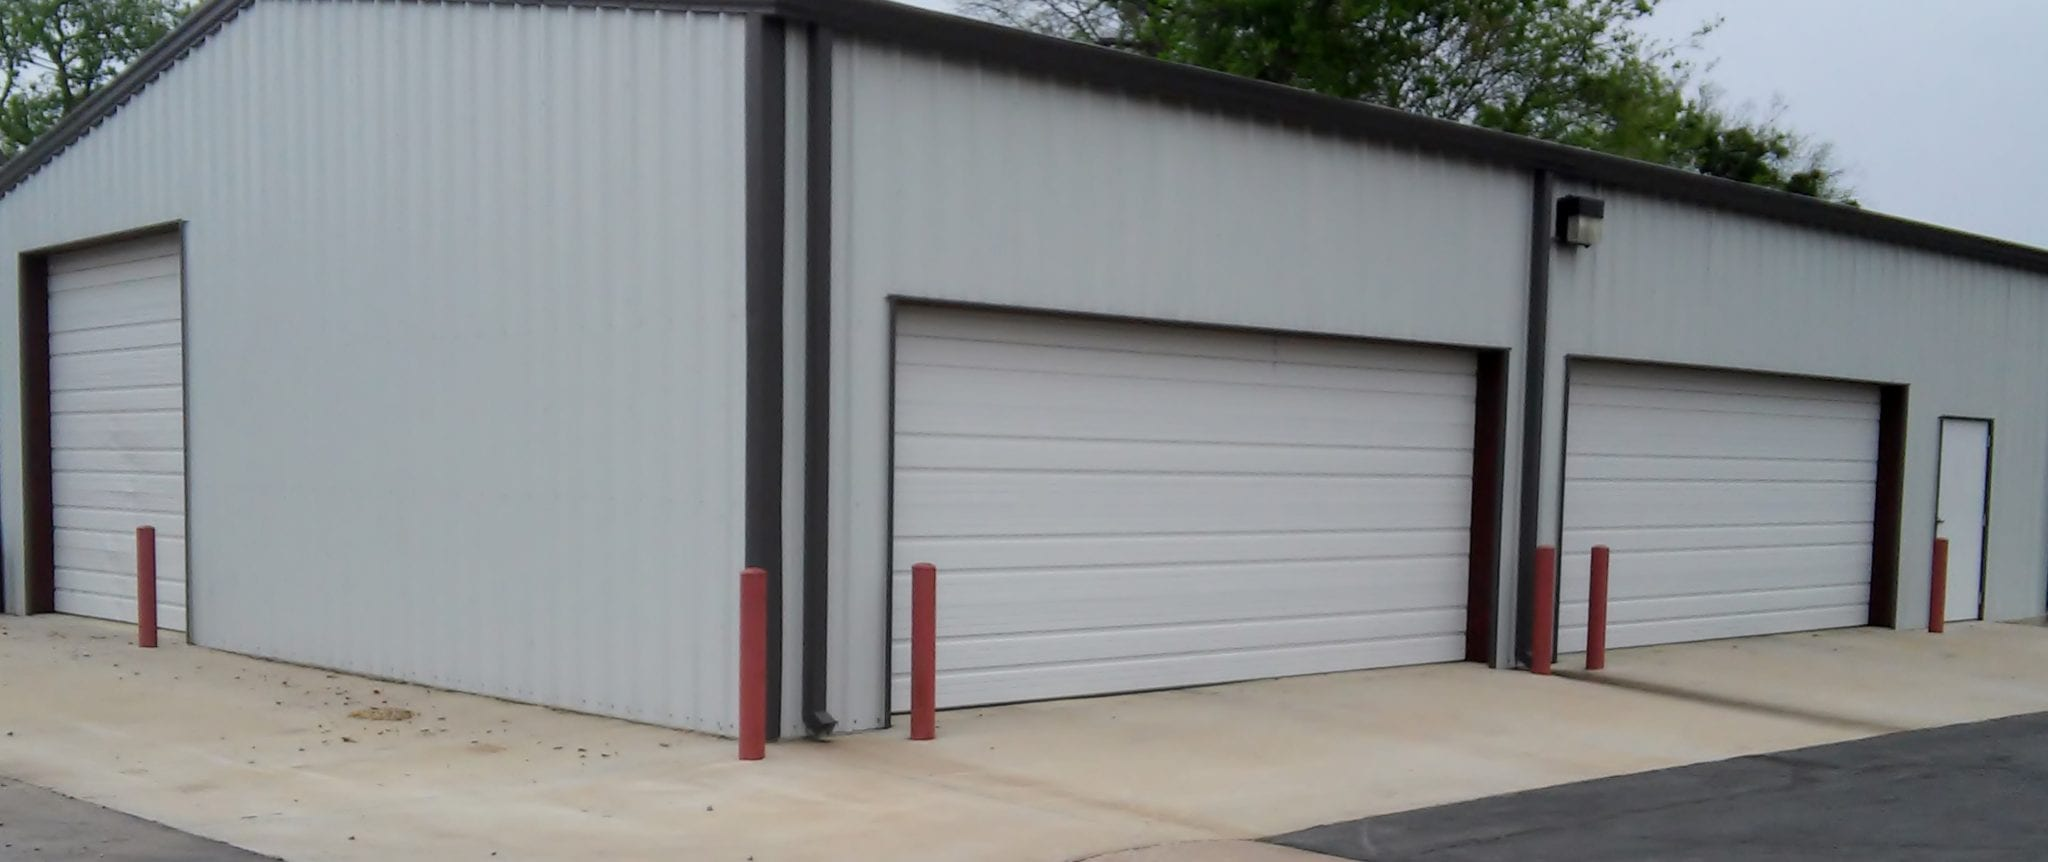 Commercial Overhead Door Services